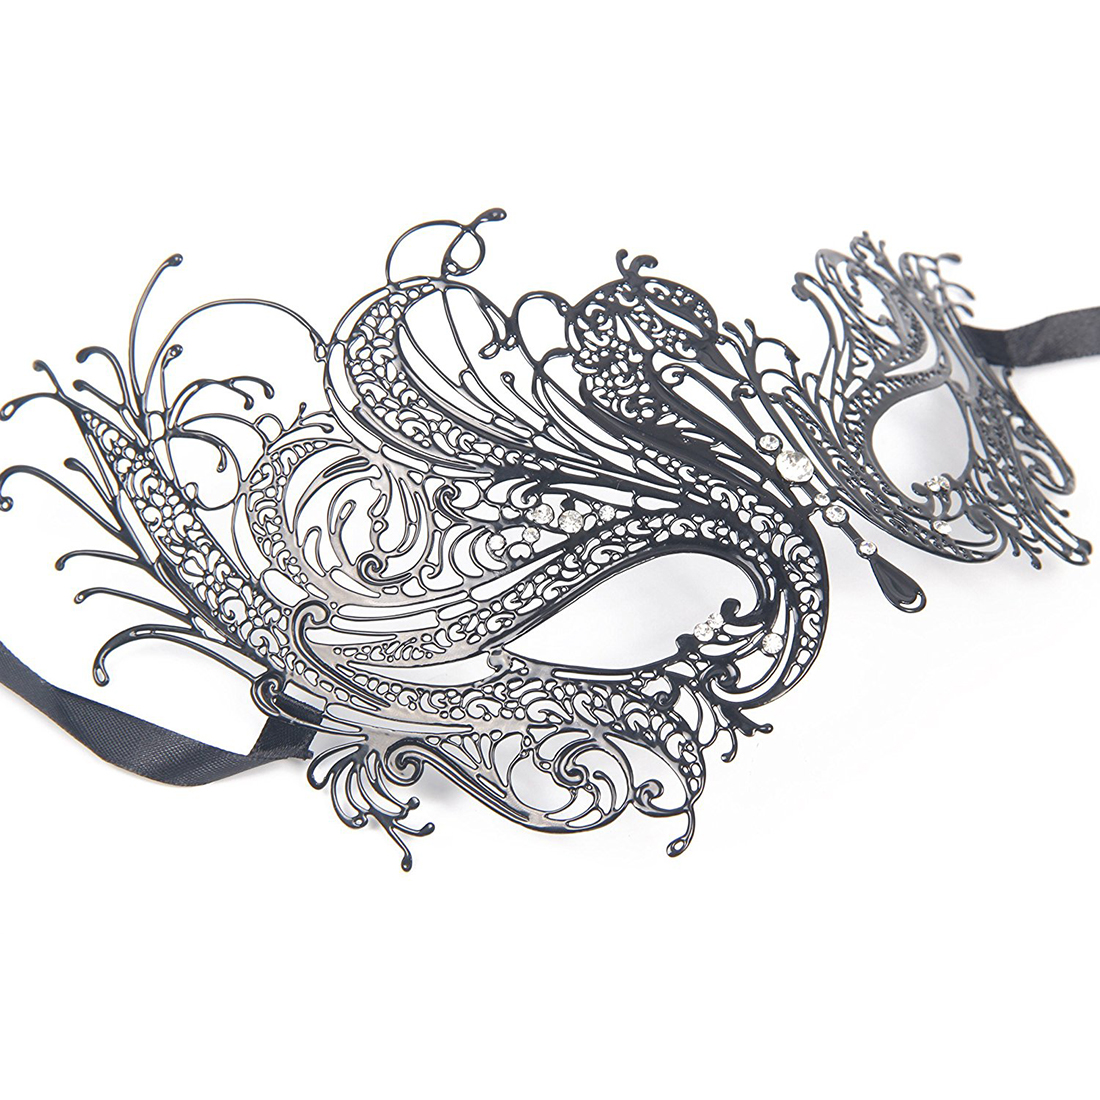 Metal Laser Cut Hollow Mask Black